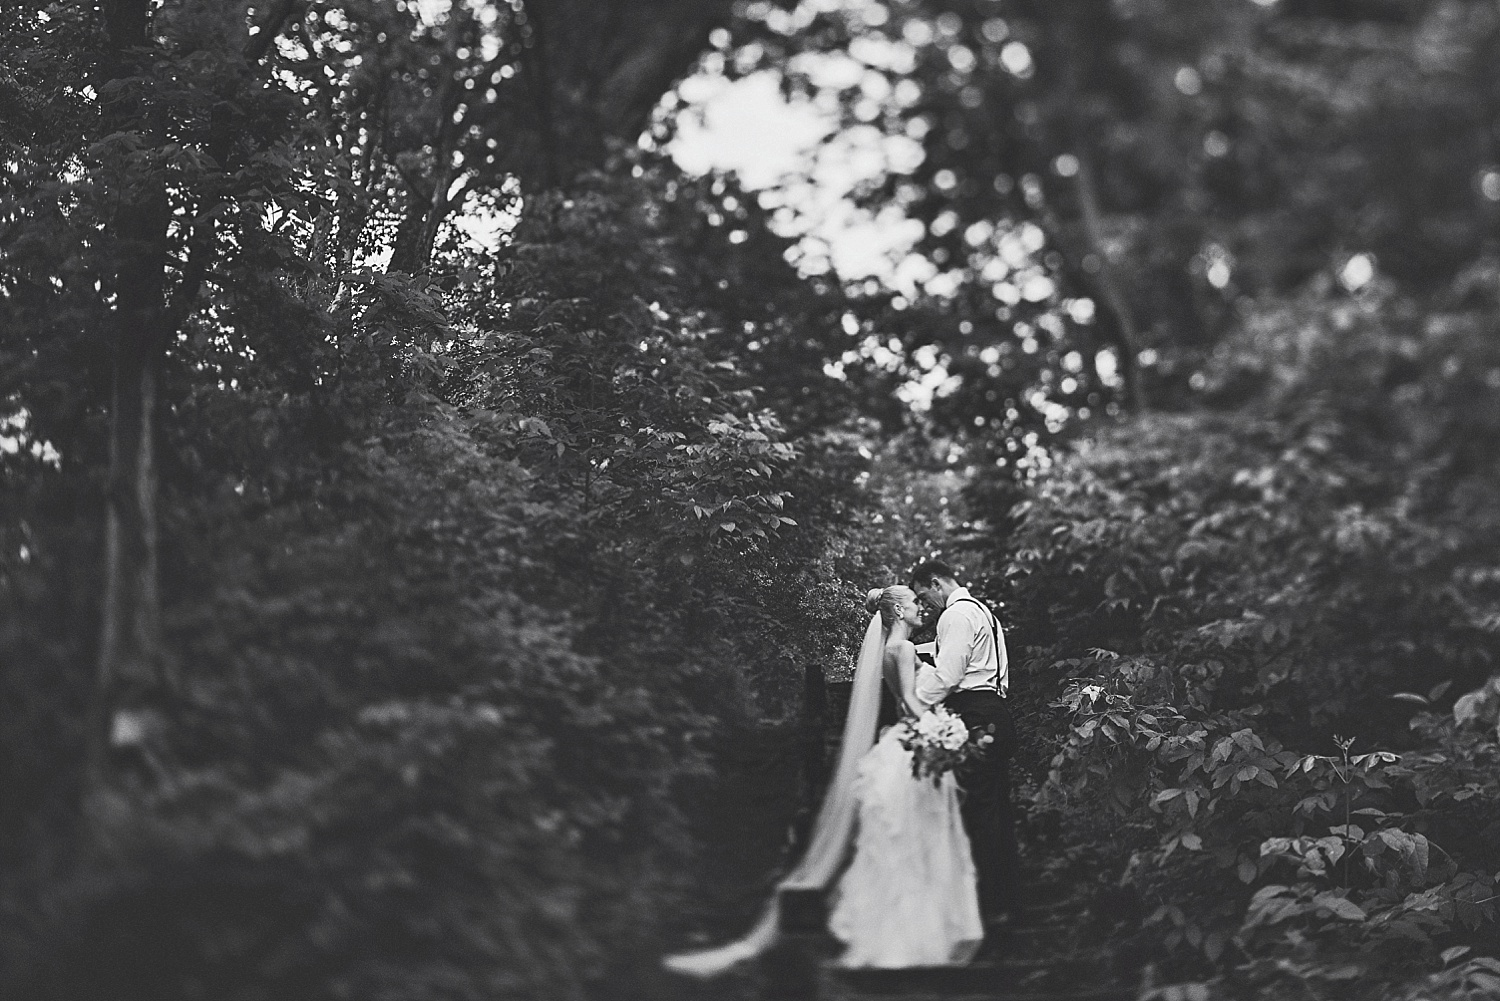 Tom_Alex_nicollet_island_wedding_by_lucas_botz_Photography_0039.jpg